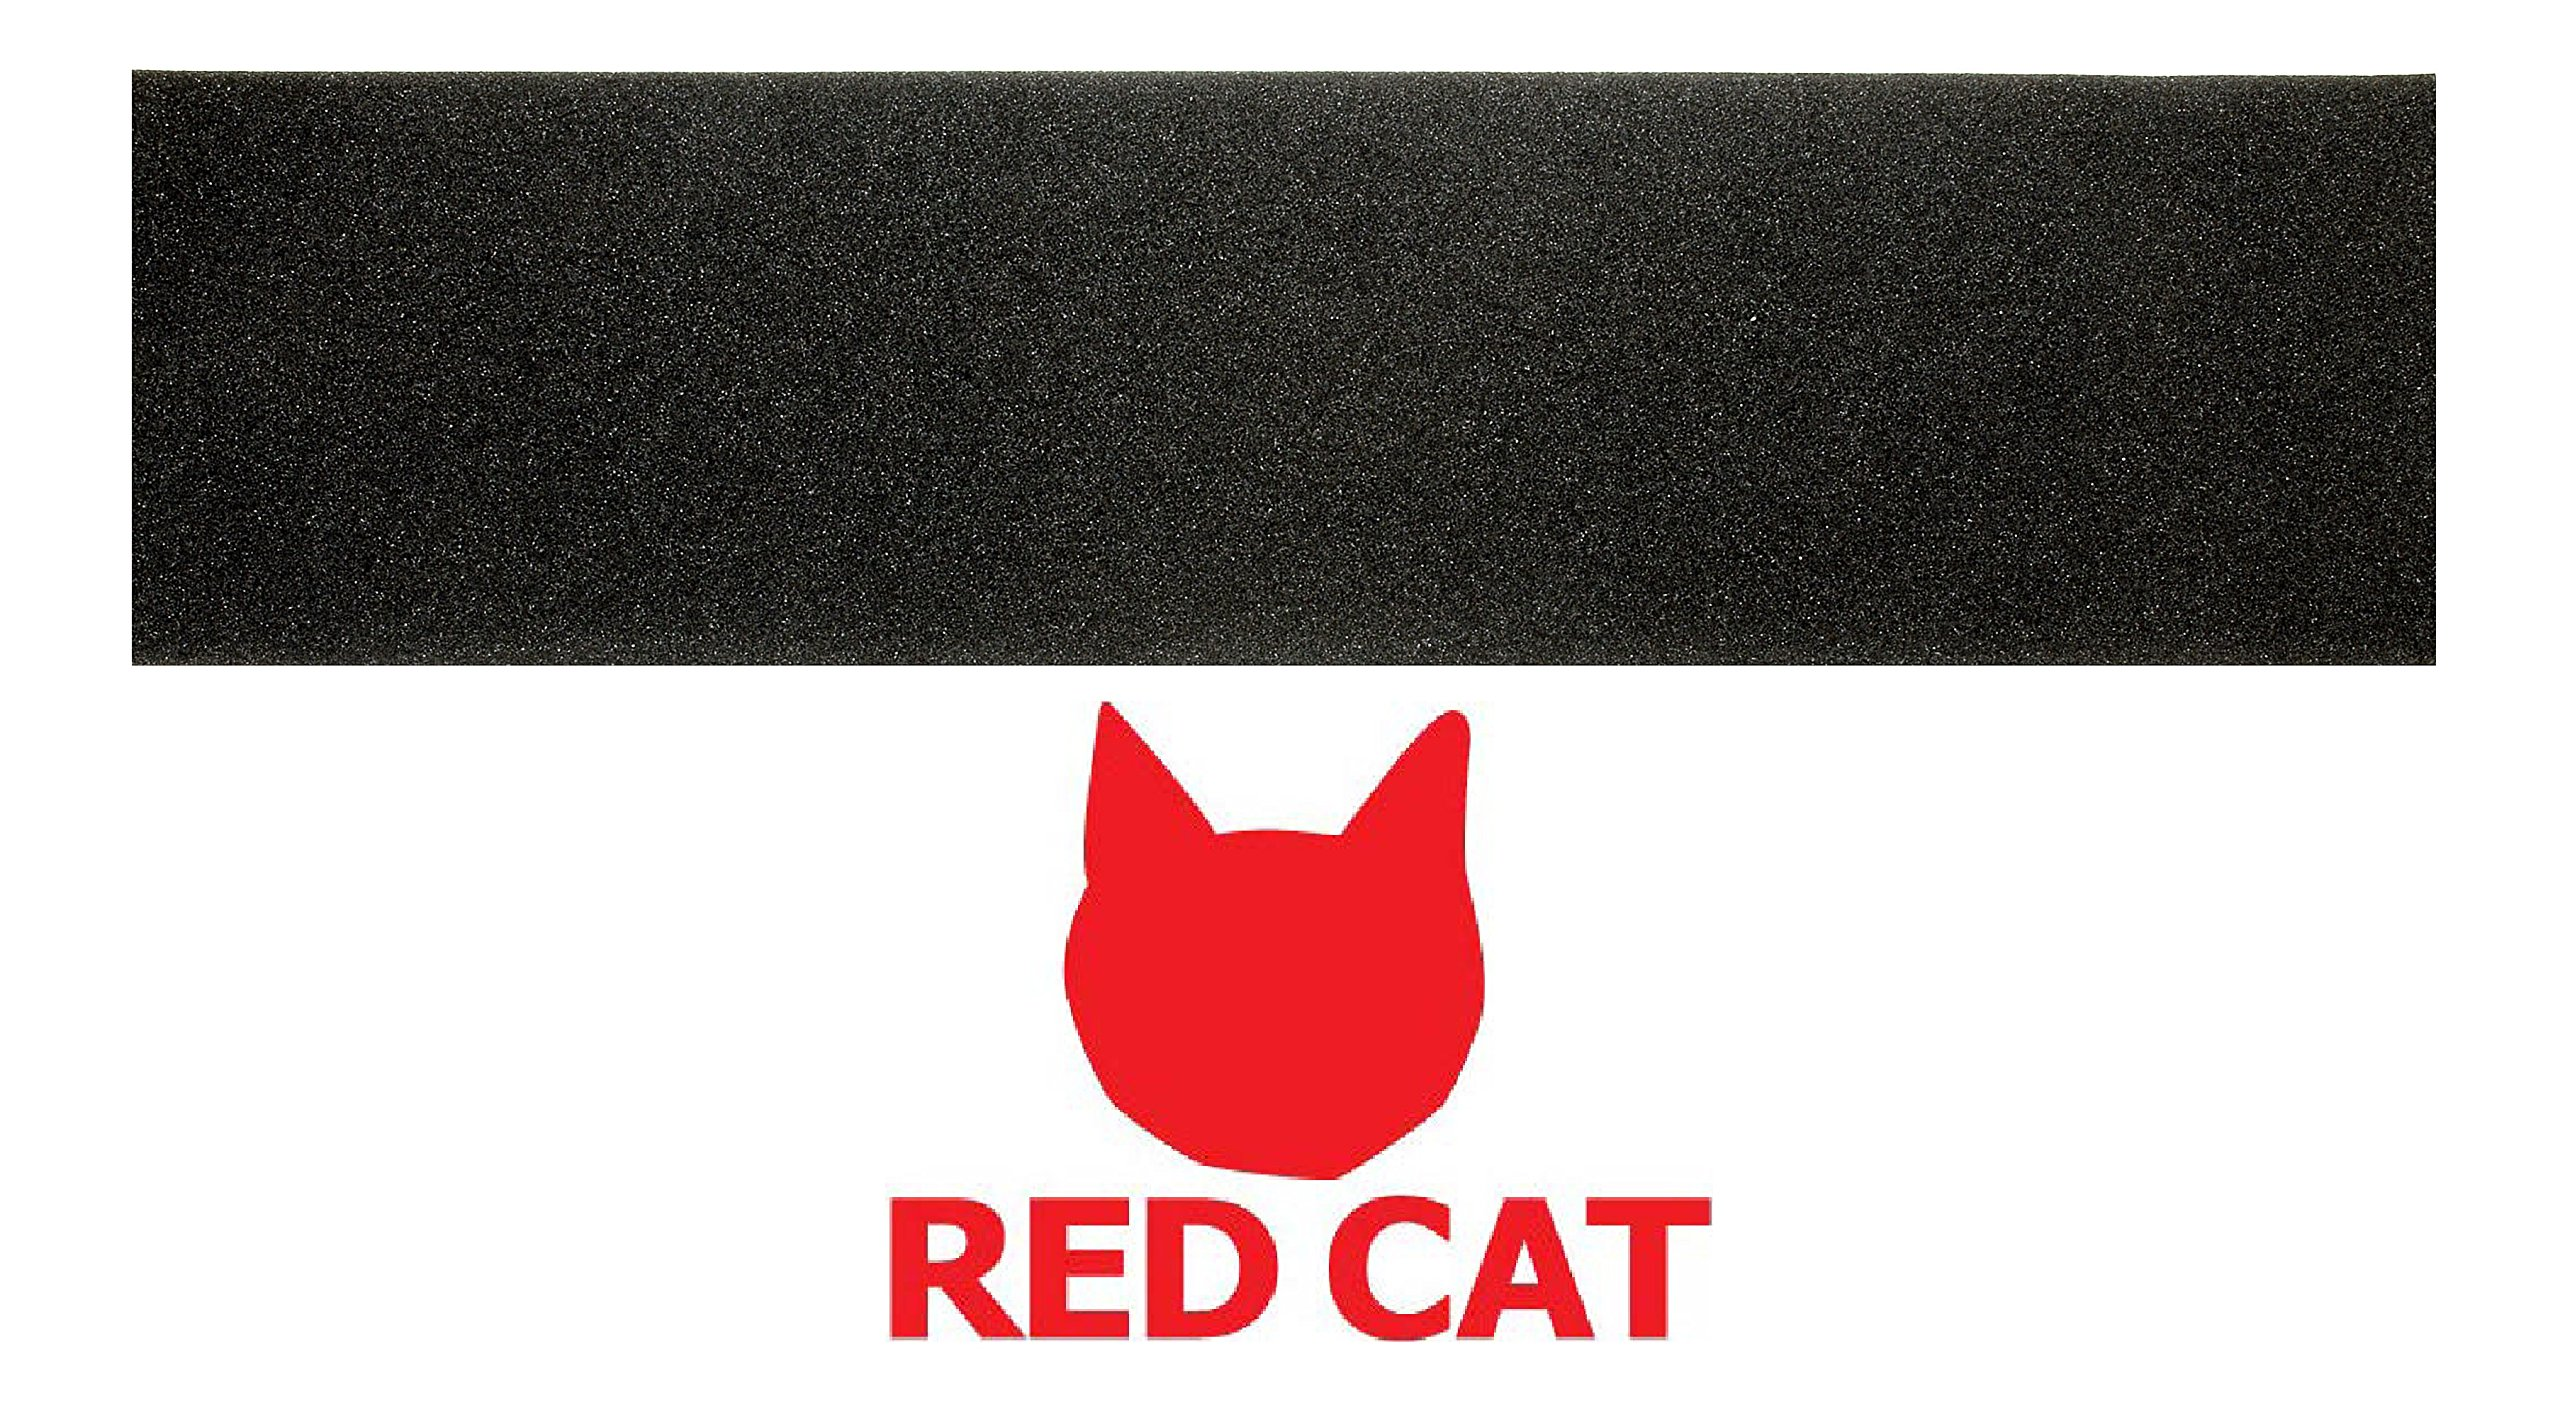 Red Cat Brand Scooter Grip Tape Black. Guaranteed BUBBLE FREE! Pro Grade Grip Tape made for scooters. Awesome grip 4.5'' x 20'' Fits most kick, electric, gas, Razor, Phoenix, Micro, Lucky, etc.